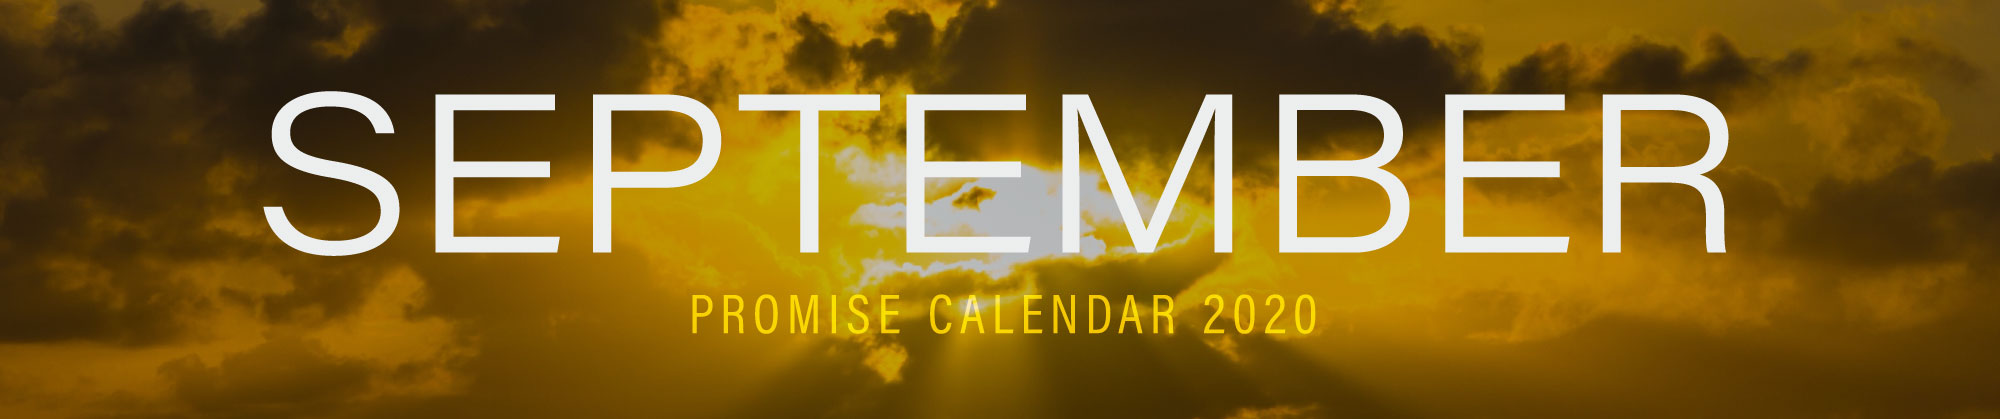 September 2020 Promise Calendar Header